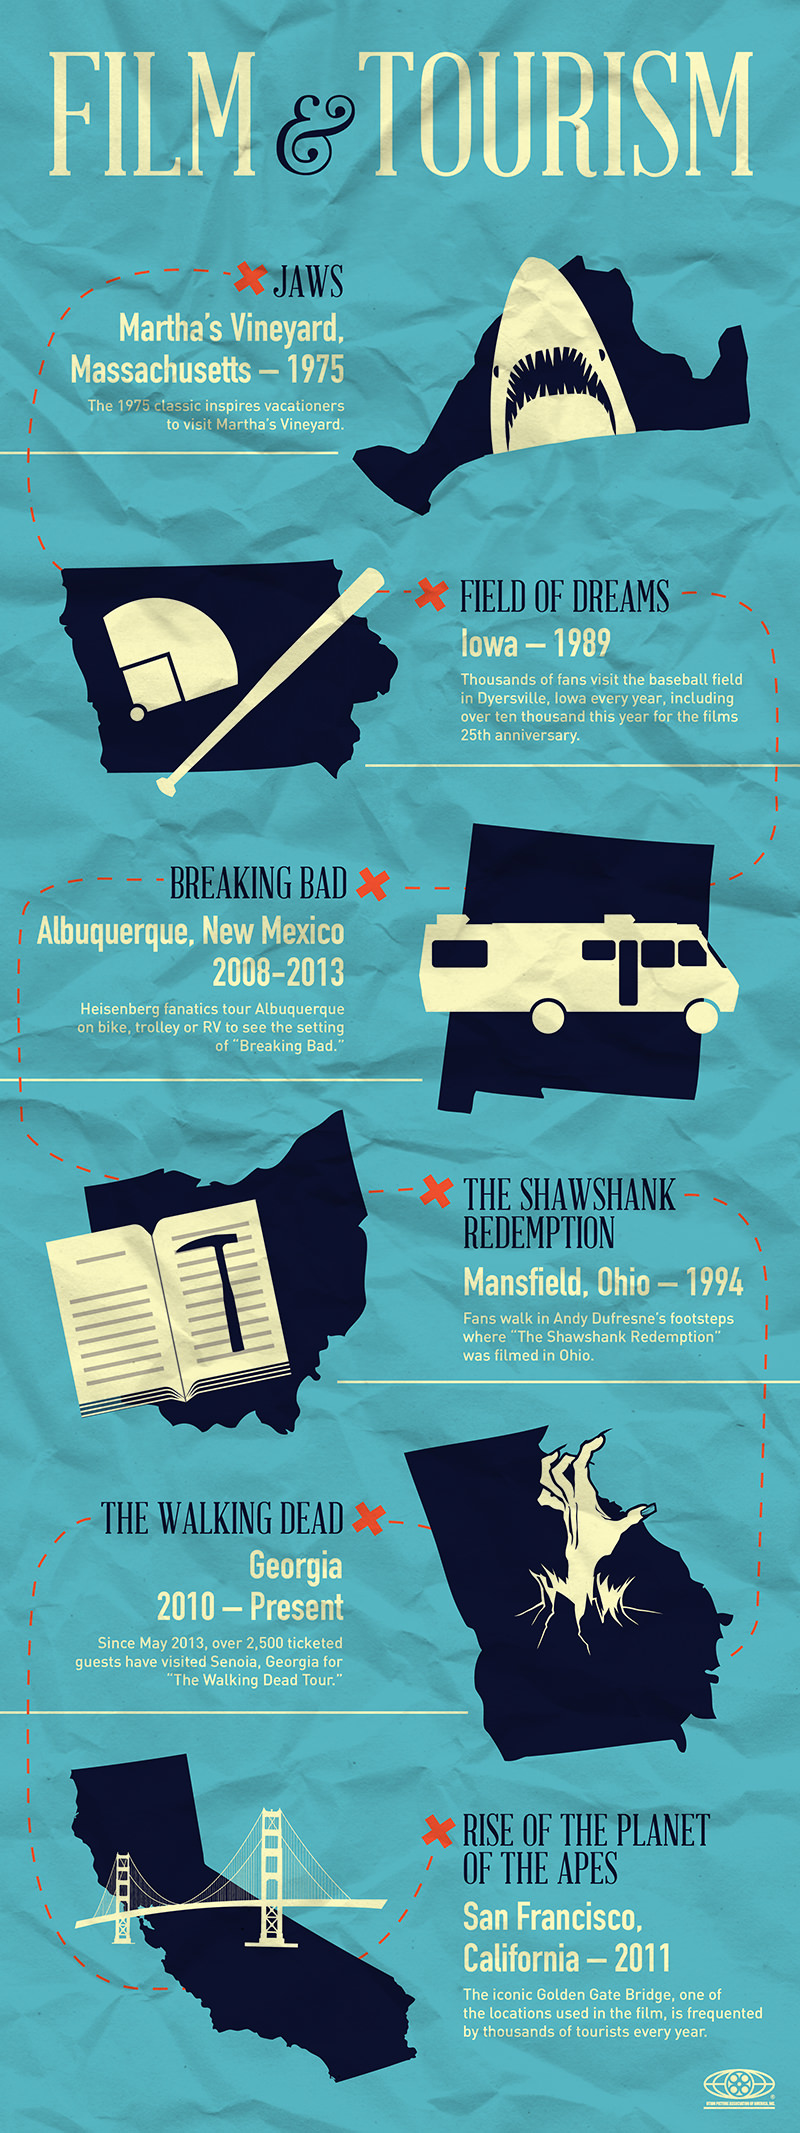 Film and tourism infographic with logo